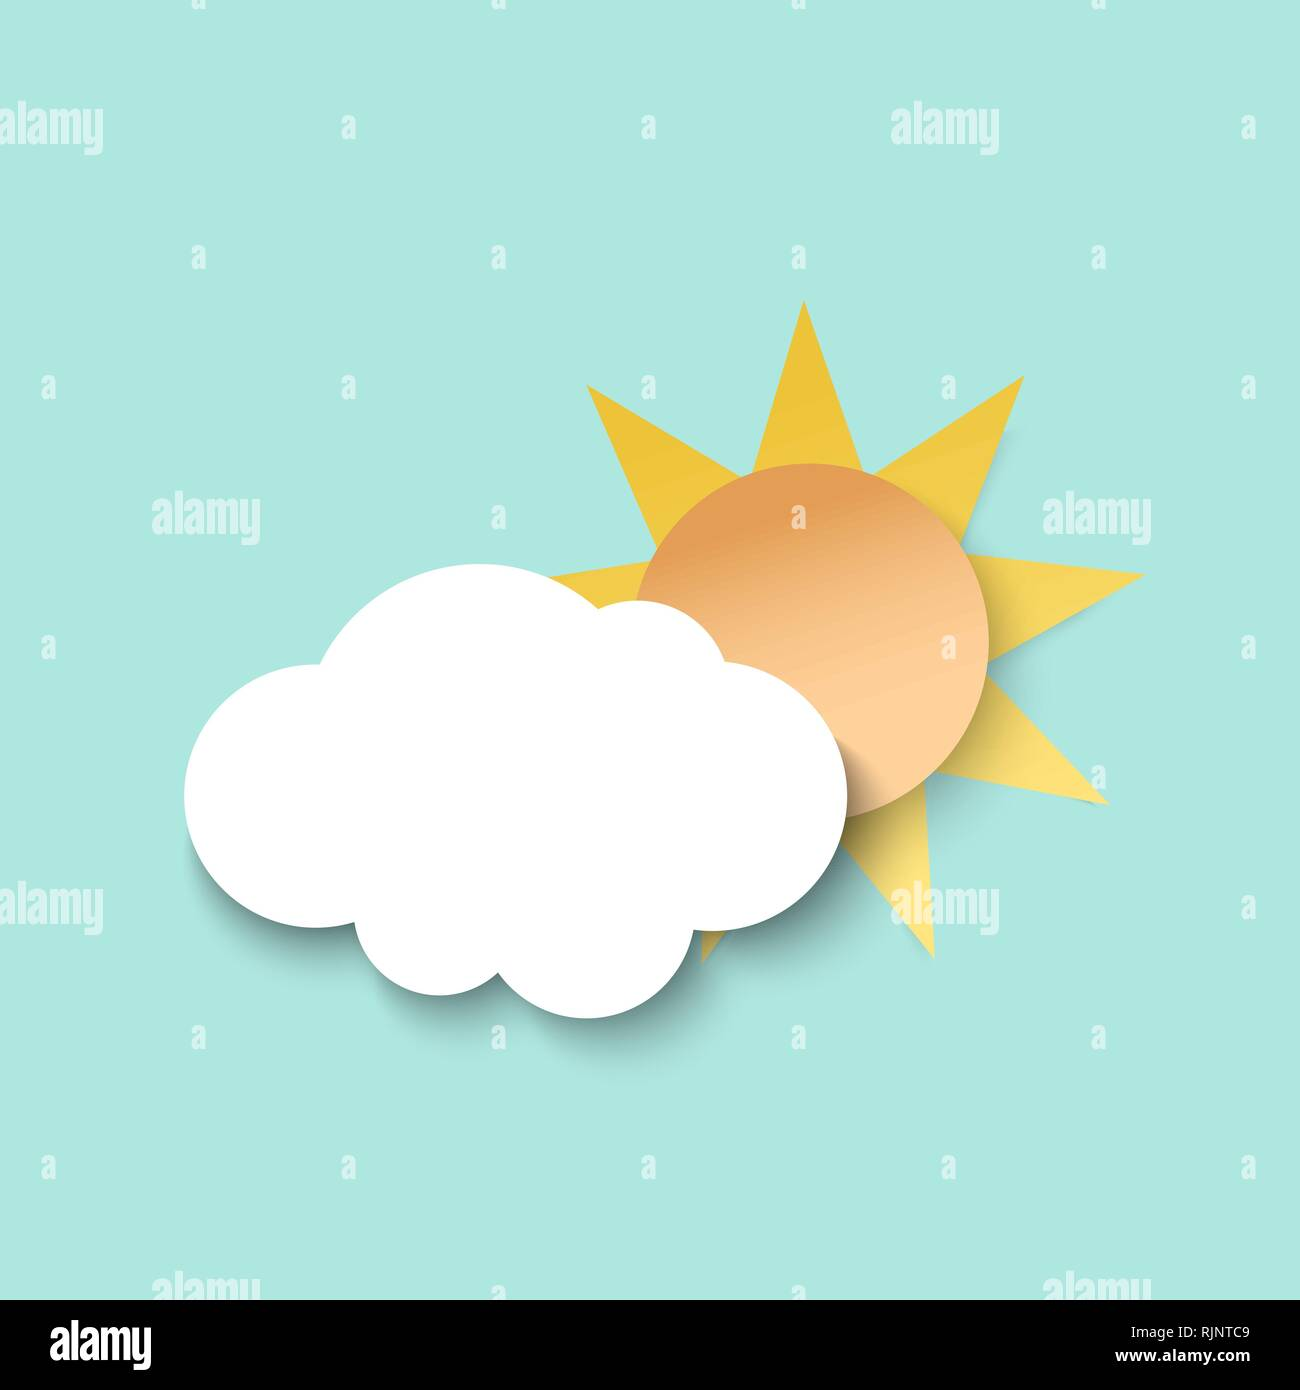 White paper cut cloud and sun. 3d paper art style. Weather illustration - Stock Image